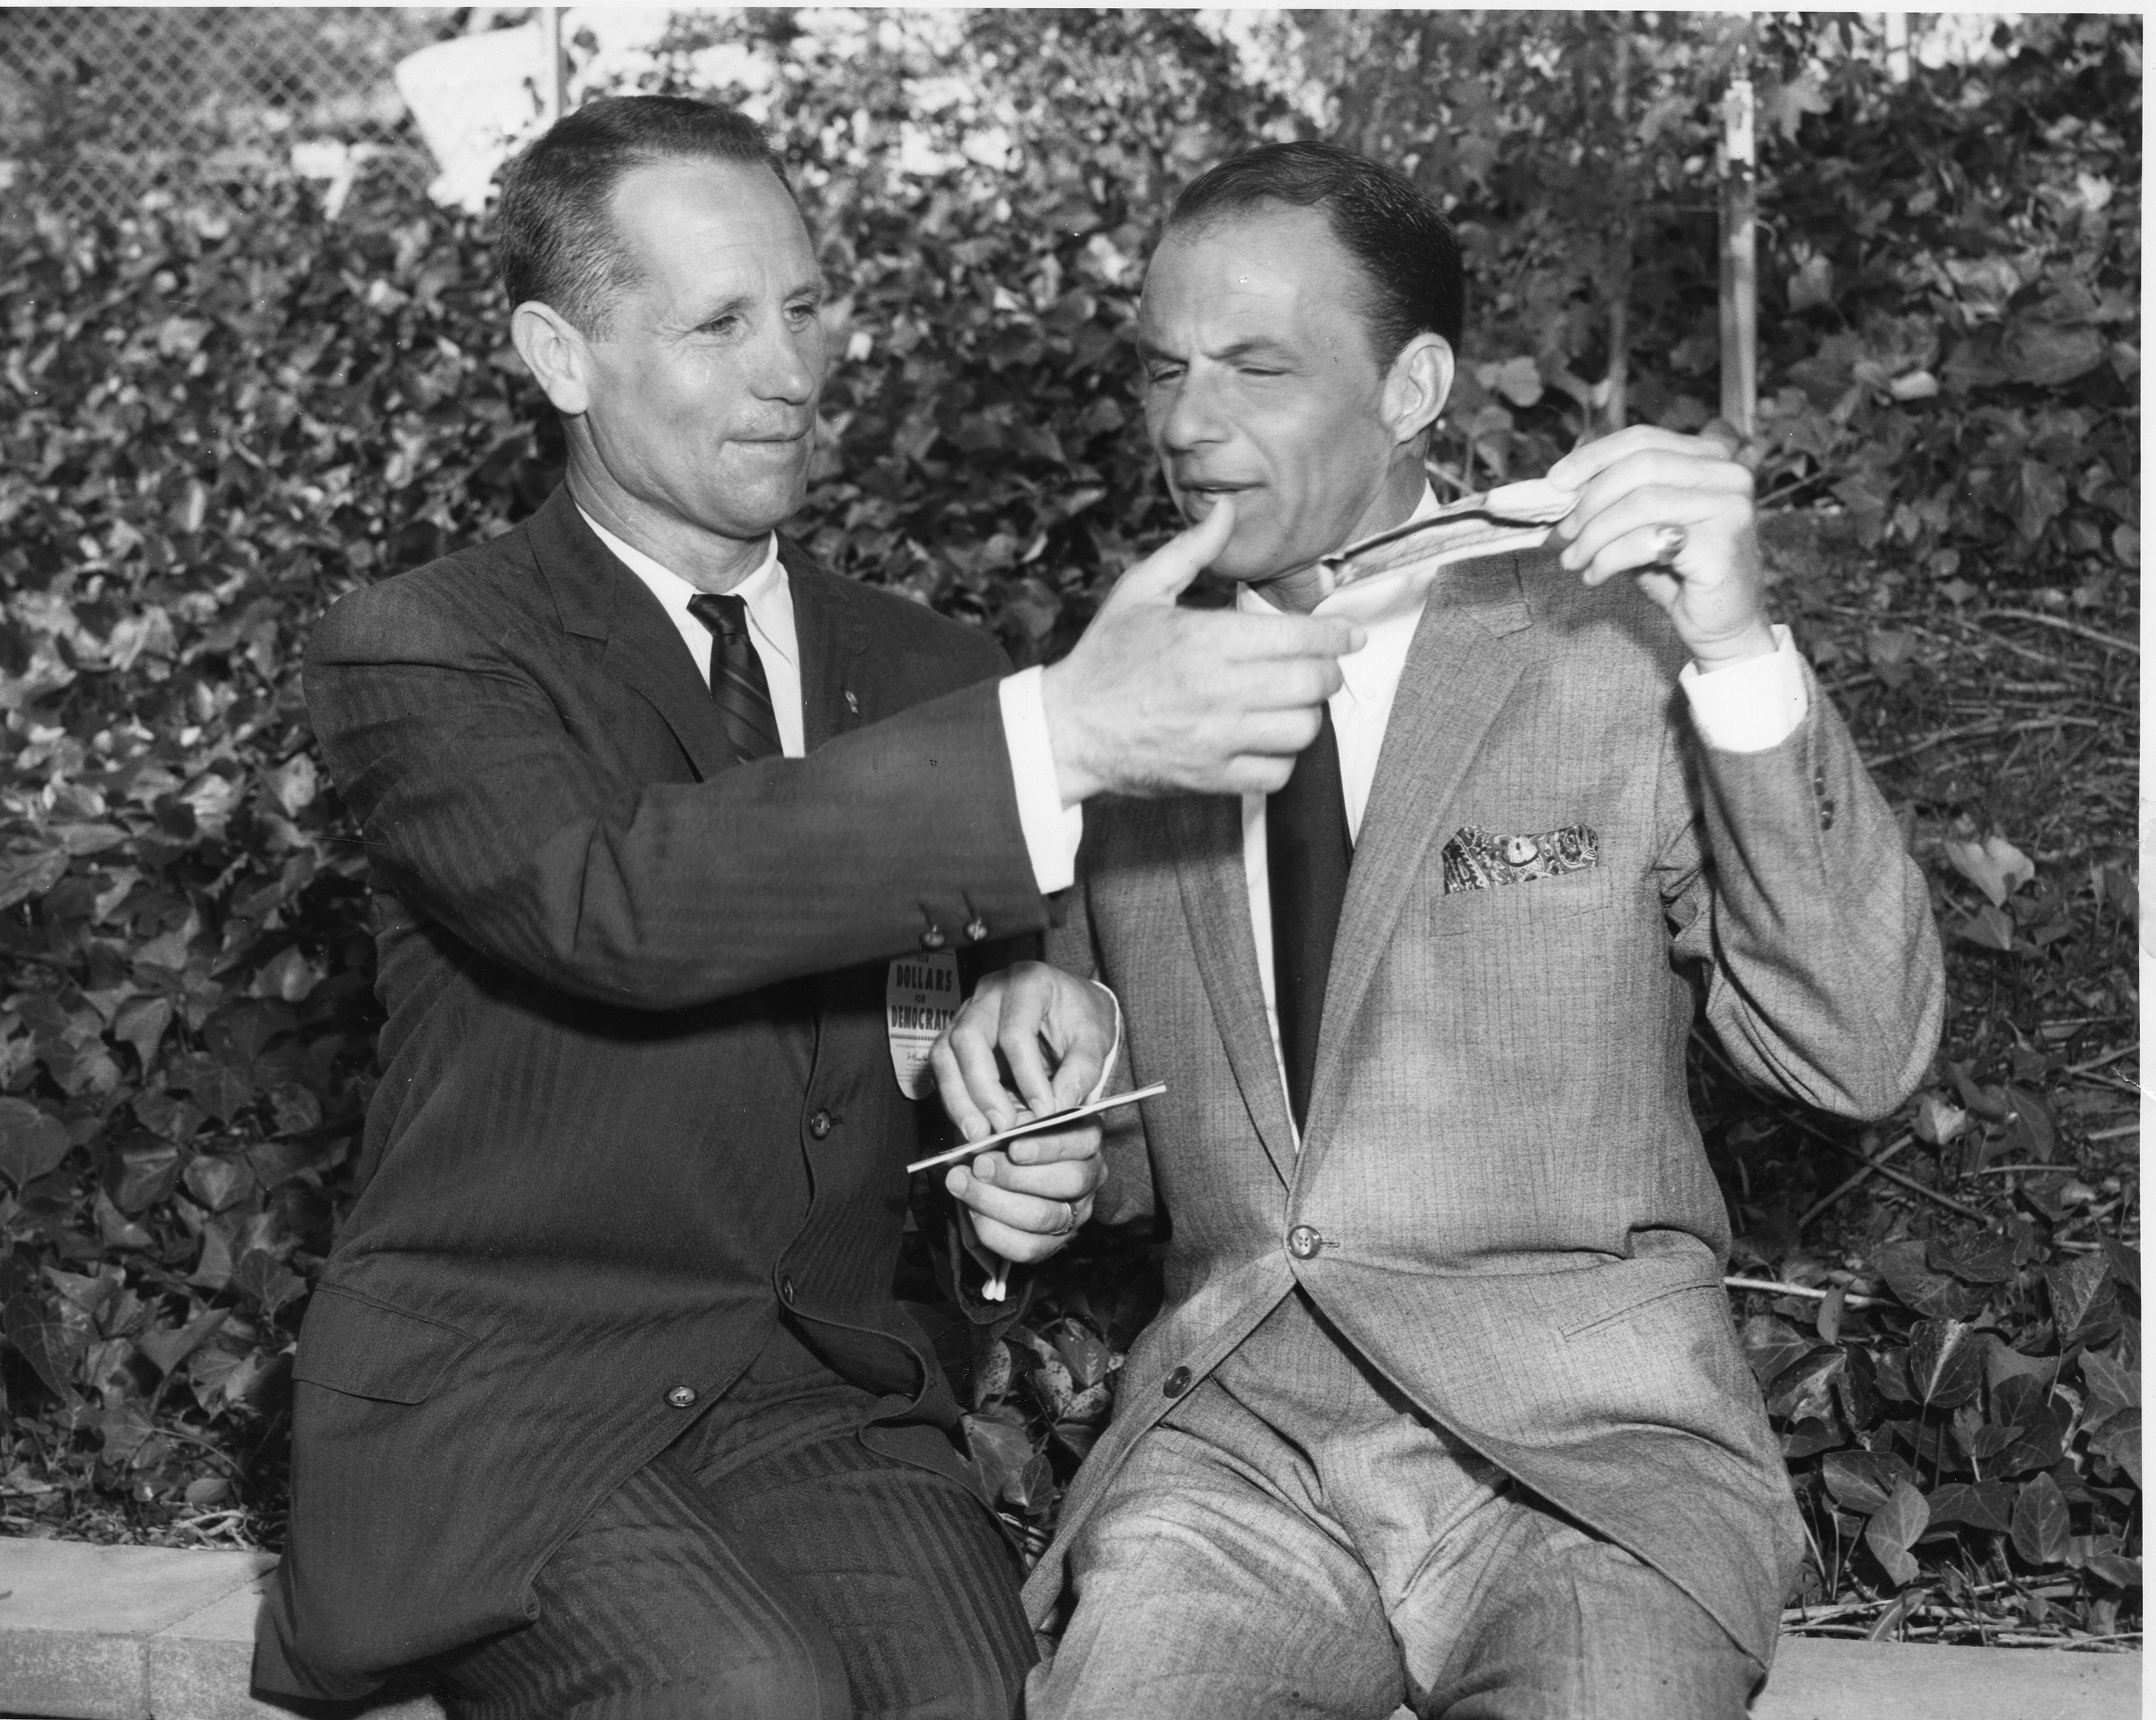 Image of Glenn Anderson and Frank Sinatra